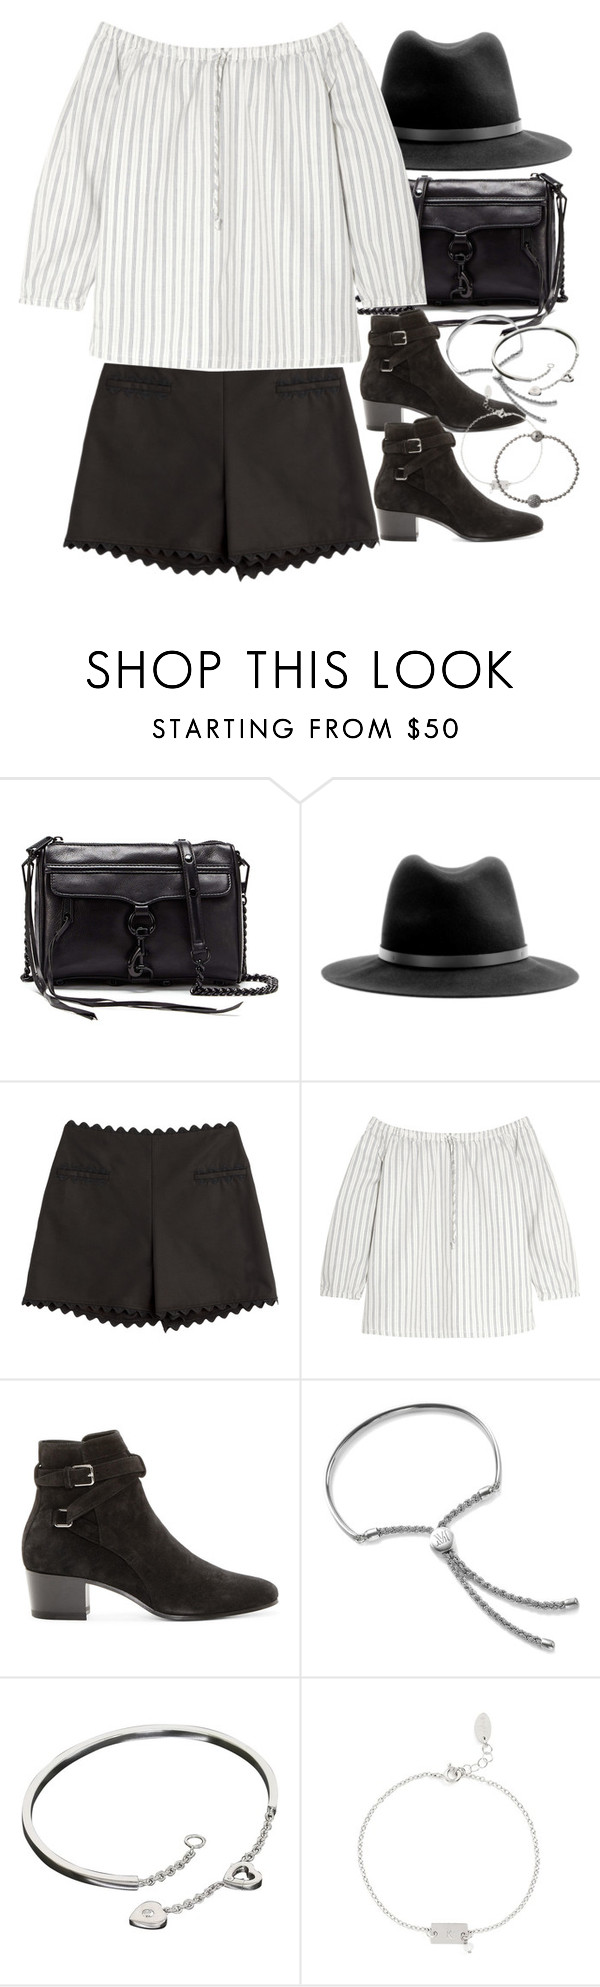 """""""Untitled #8985"""" by nikka-phillips ❤ liked on Polyvore featuring Rebecca Minkoff, rag & bone, Moschino Cheap & Chic, Madewell, Yves Saint Laurent, Monica Vinader, Cartier, Nashelle and Shamballa Jewels"""